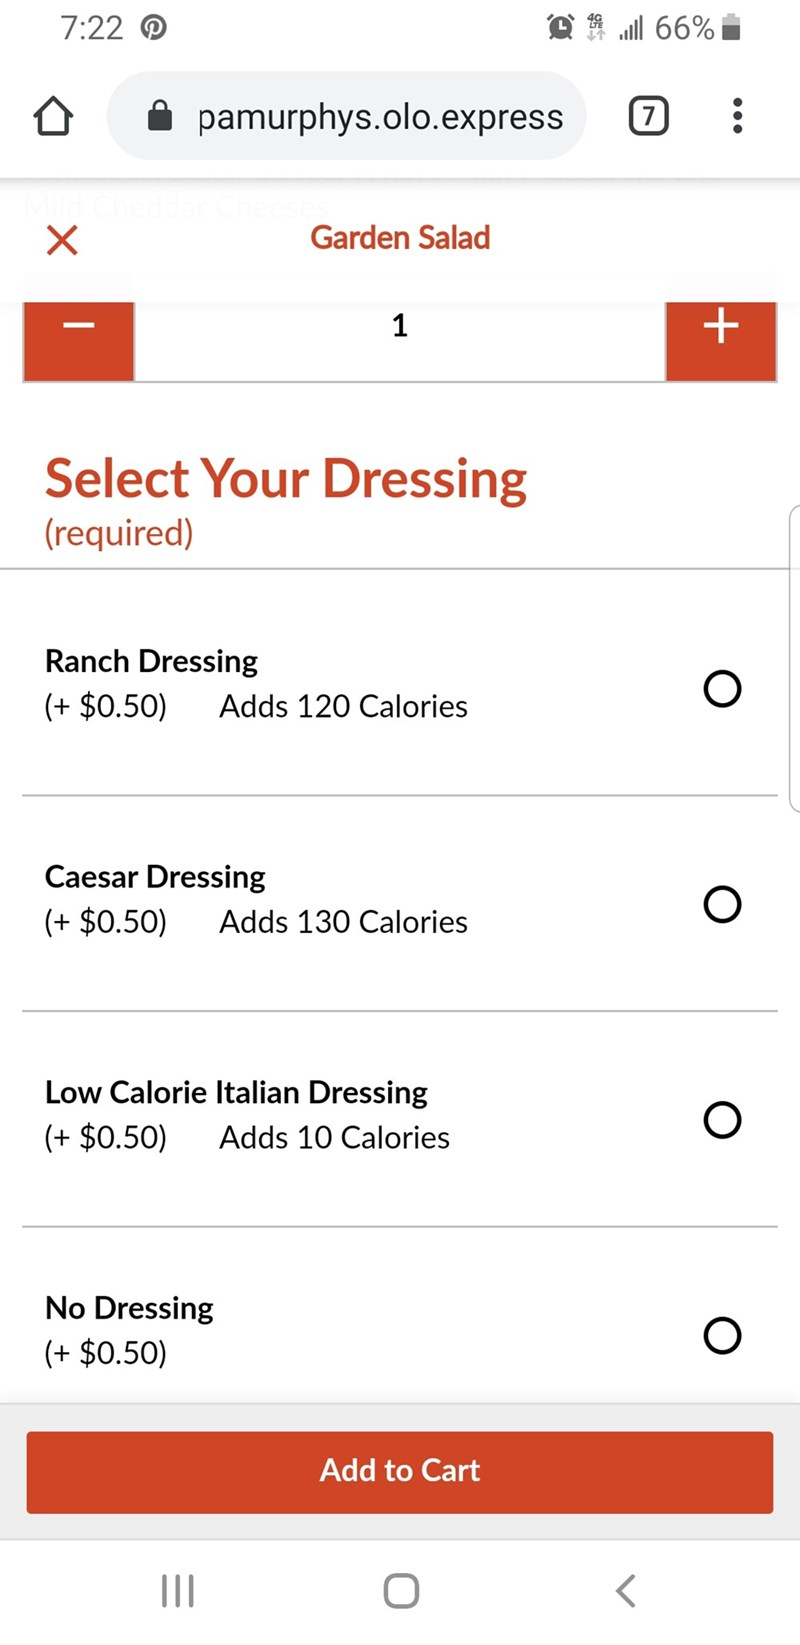 Text - 66% 7:22 7 pamurphys.olo.express X Garden Salad + 1 Select Your Dressing (required) Ranch Dressing (+ $0.50) Adds 120 Calories Caesar Dressing ($0.50) Adds 130 Calories Low Calorie Italian Dressing ($0.50) Adds 10 Calories No Dressing ($0.50) Add to Cart II O